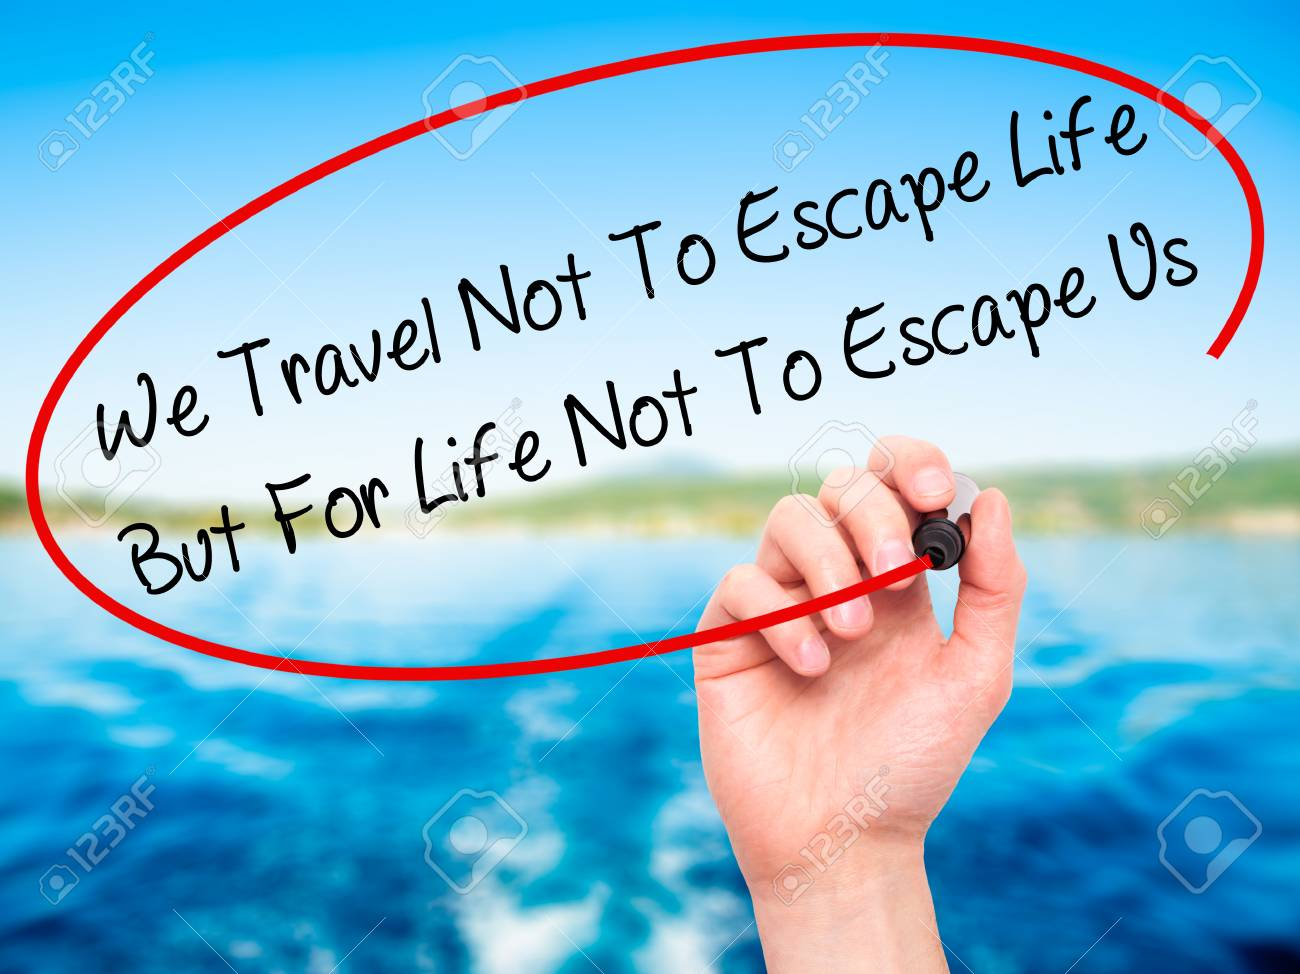 We Travel Not To Escape Life Twitter thumbnail